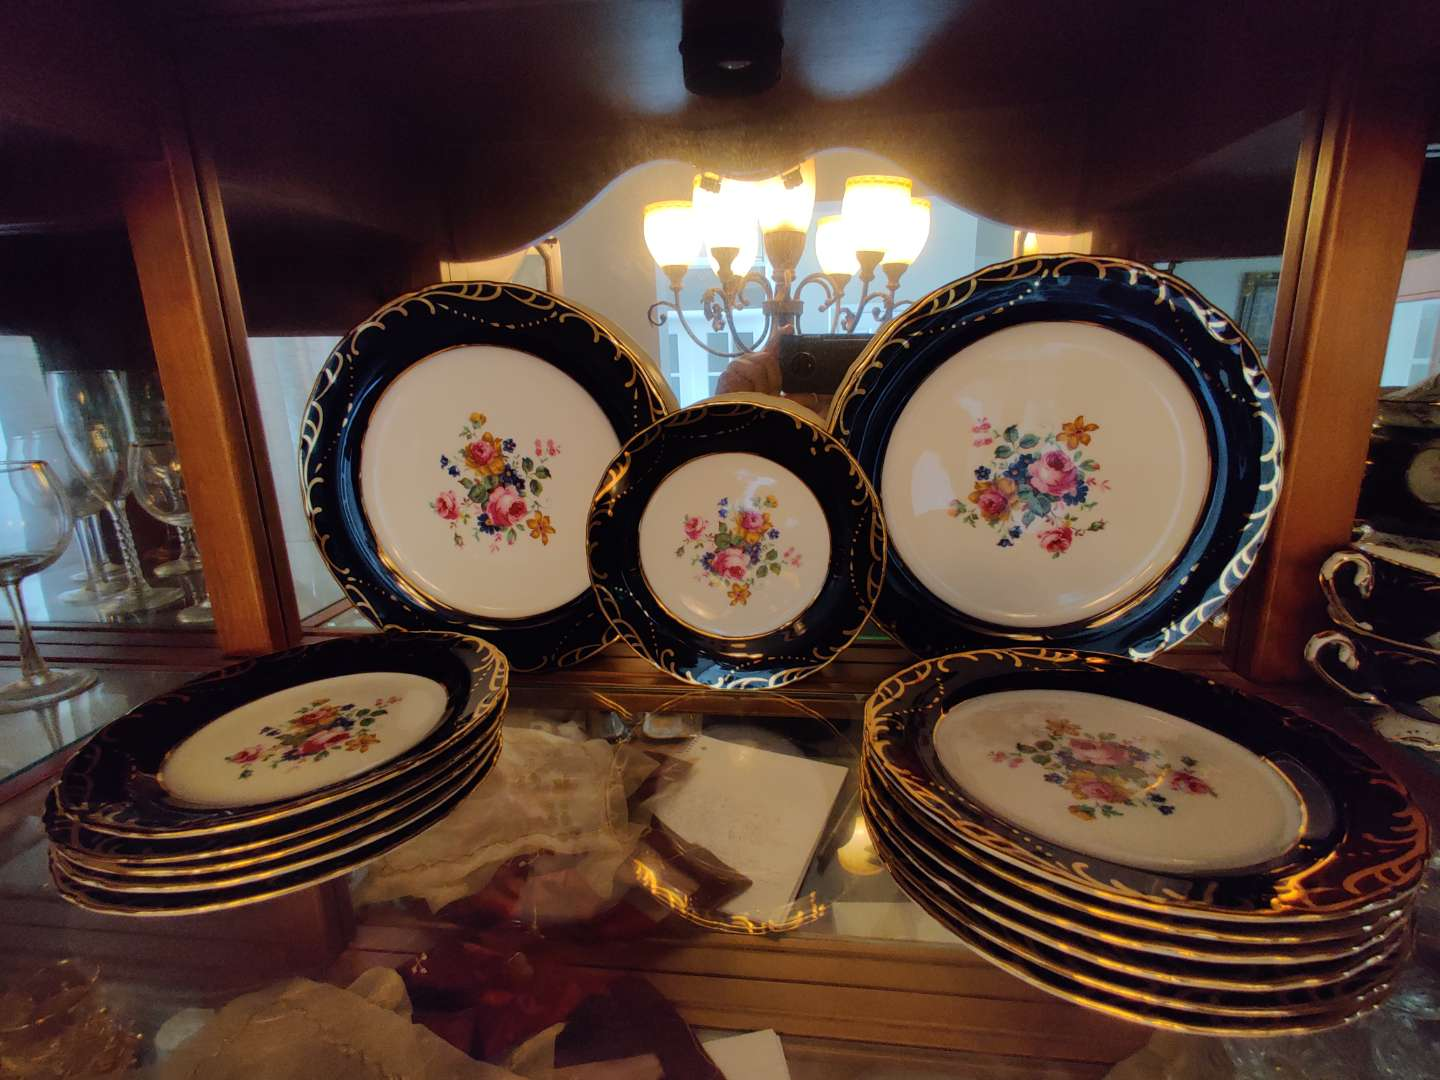 218 set of 14 pieces of blue and gold fine china two dinner plates and 12 salad plates